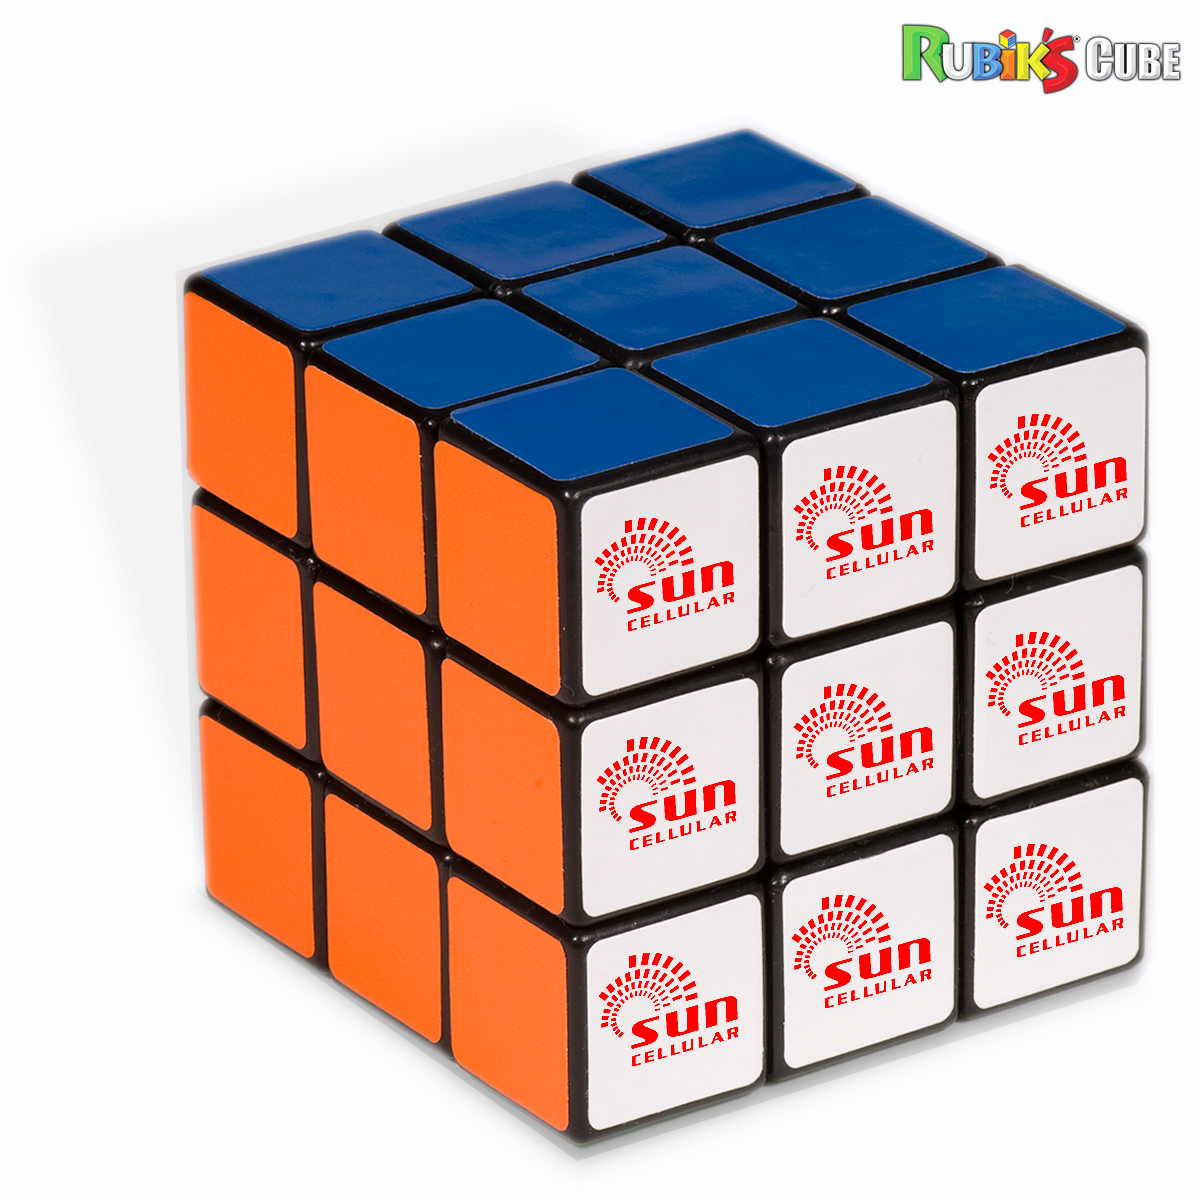 Picture of rubiks 9 panel full stock cube